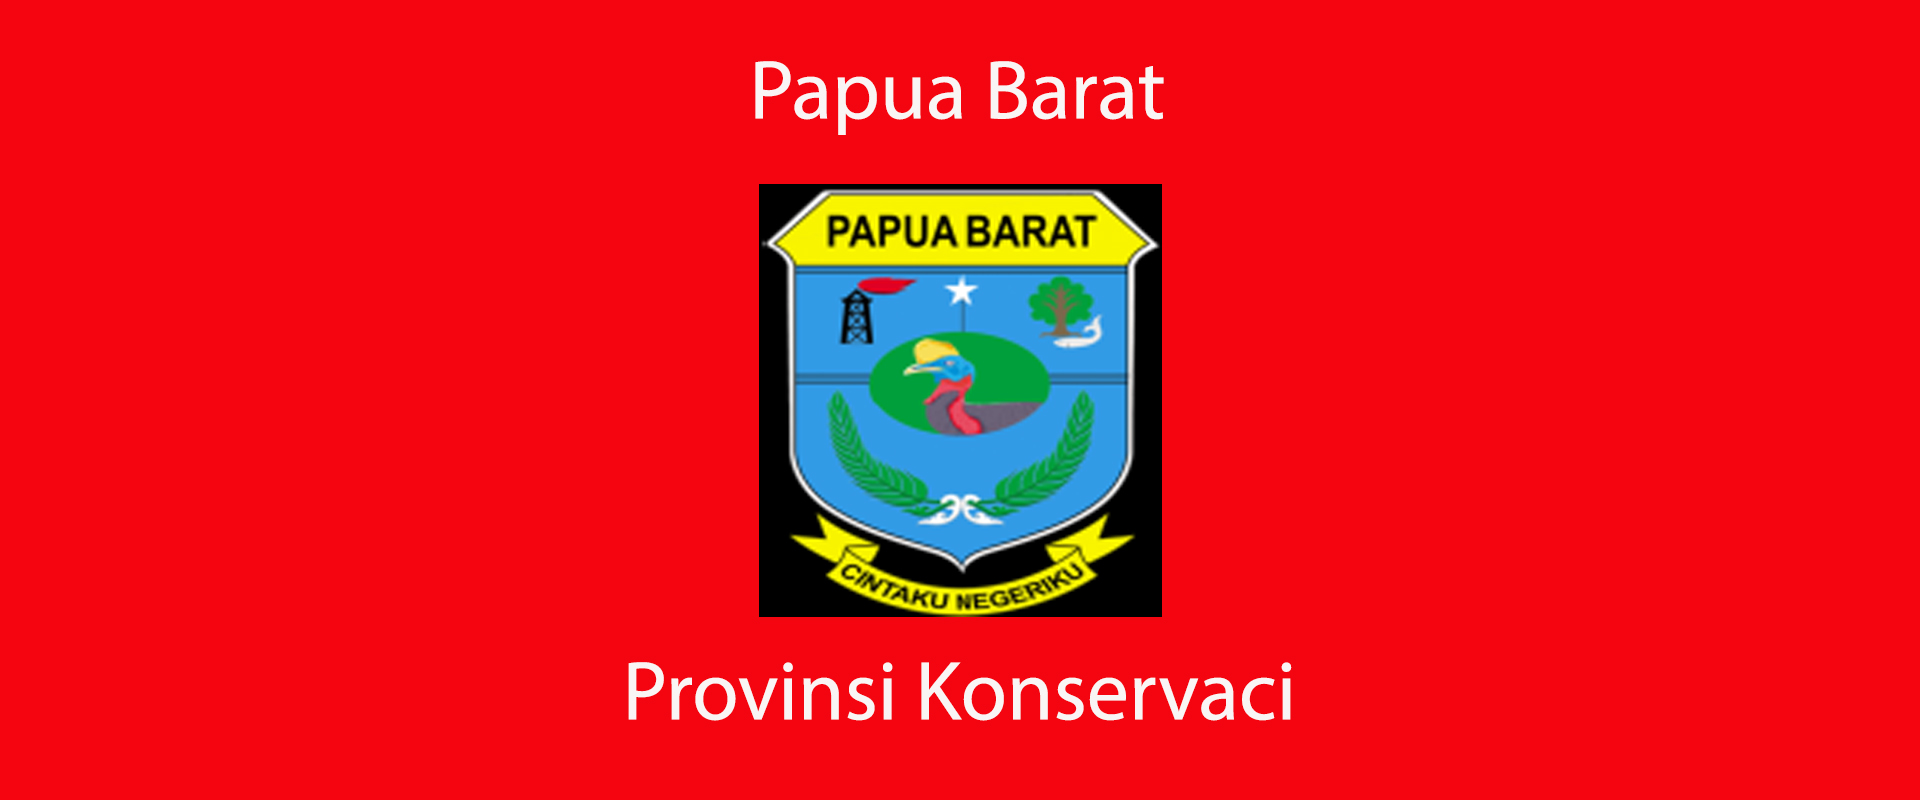 Conservation Provice 2019bahasa